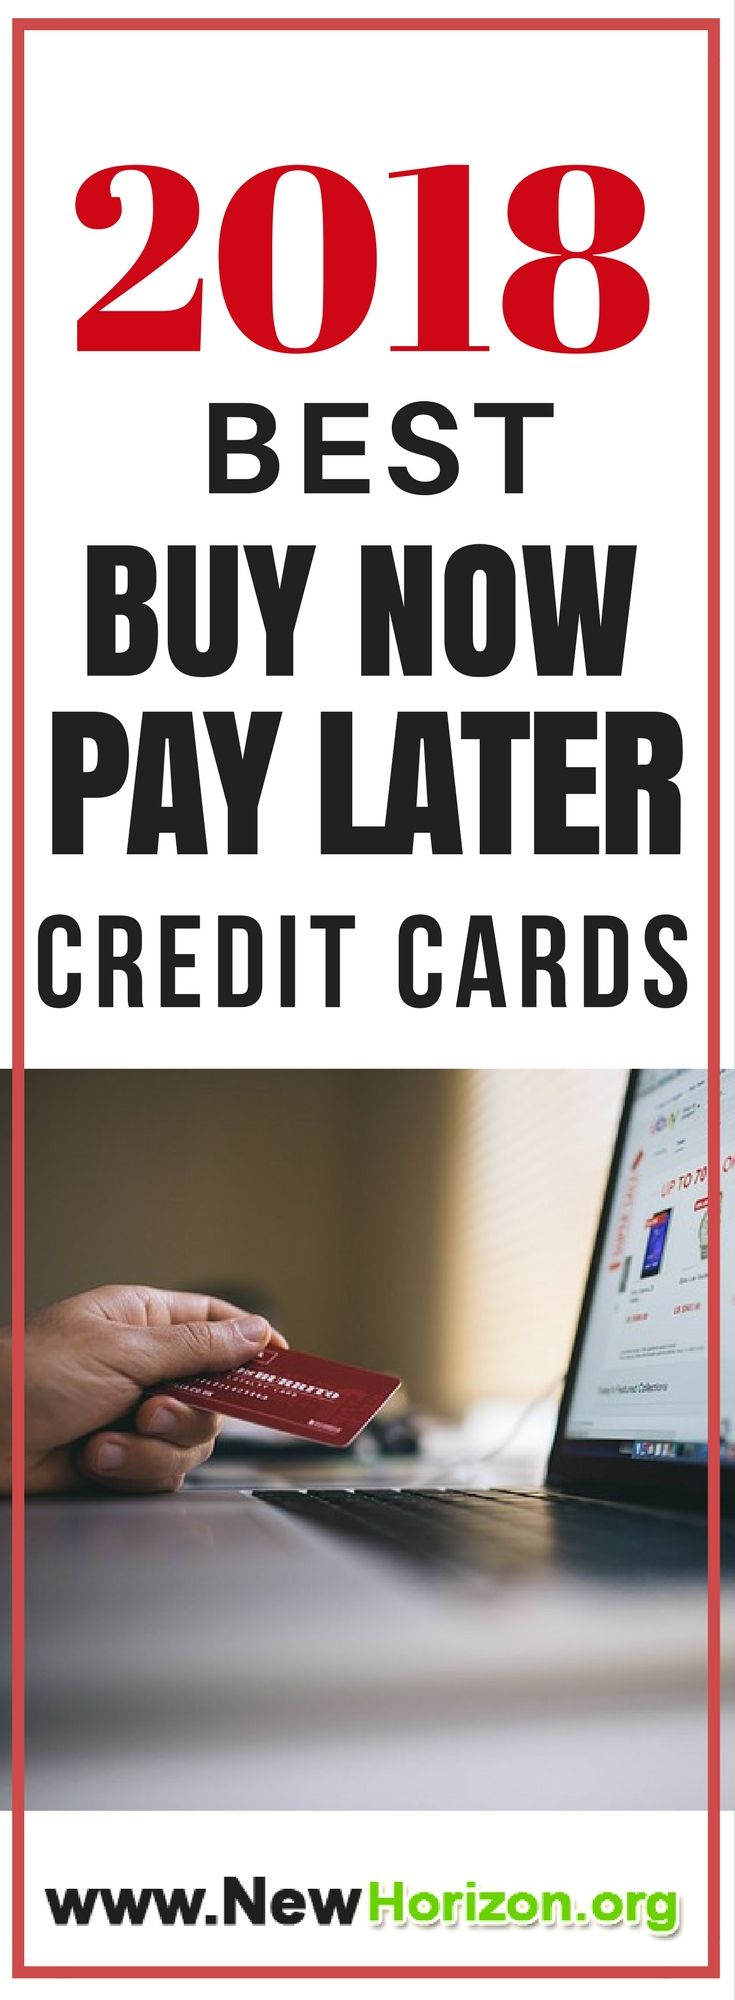 Merchandise Cards Catalog Credit Cards Credit Card Business Credit Cards Guaranteed Approval Credit Card